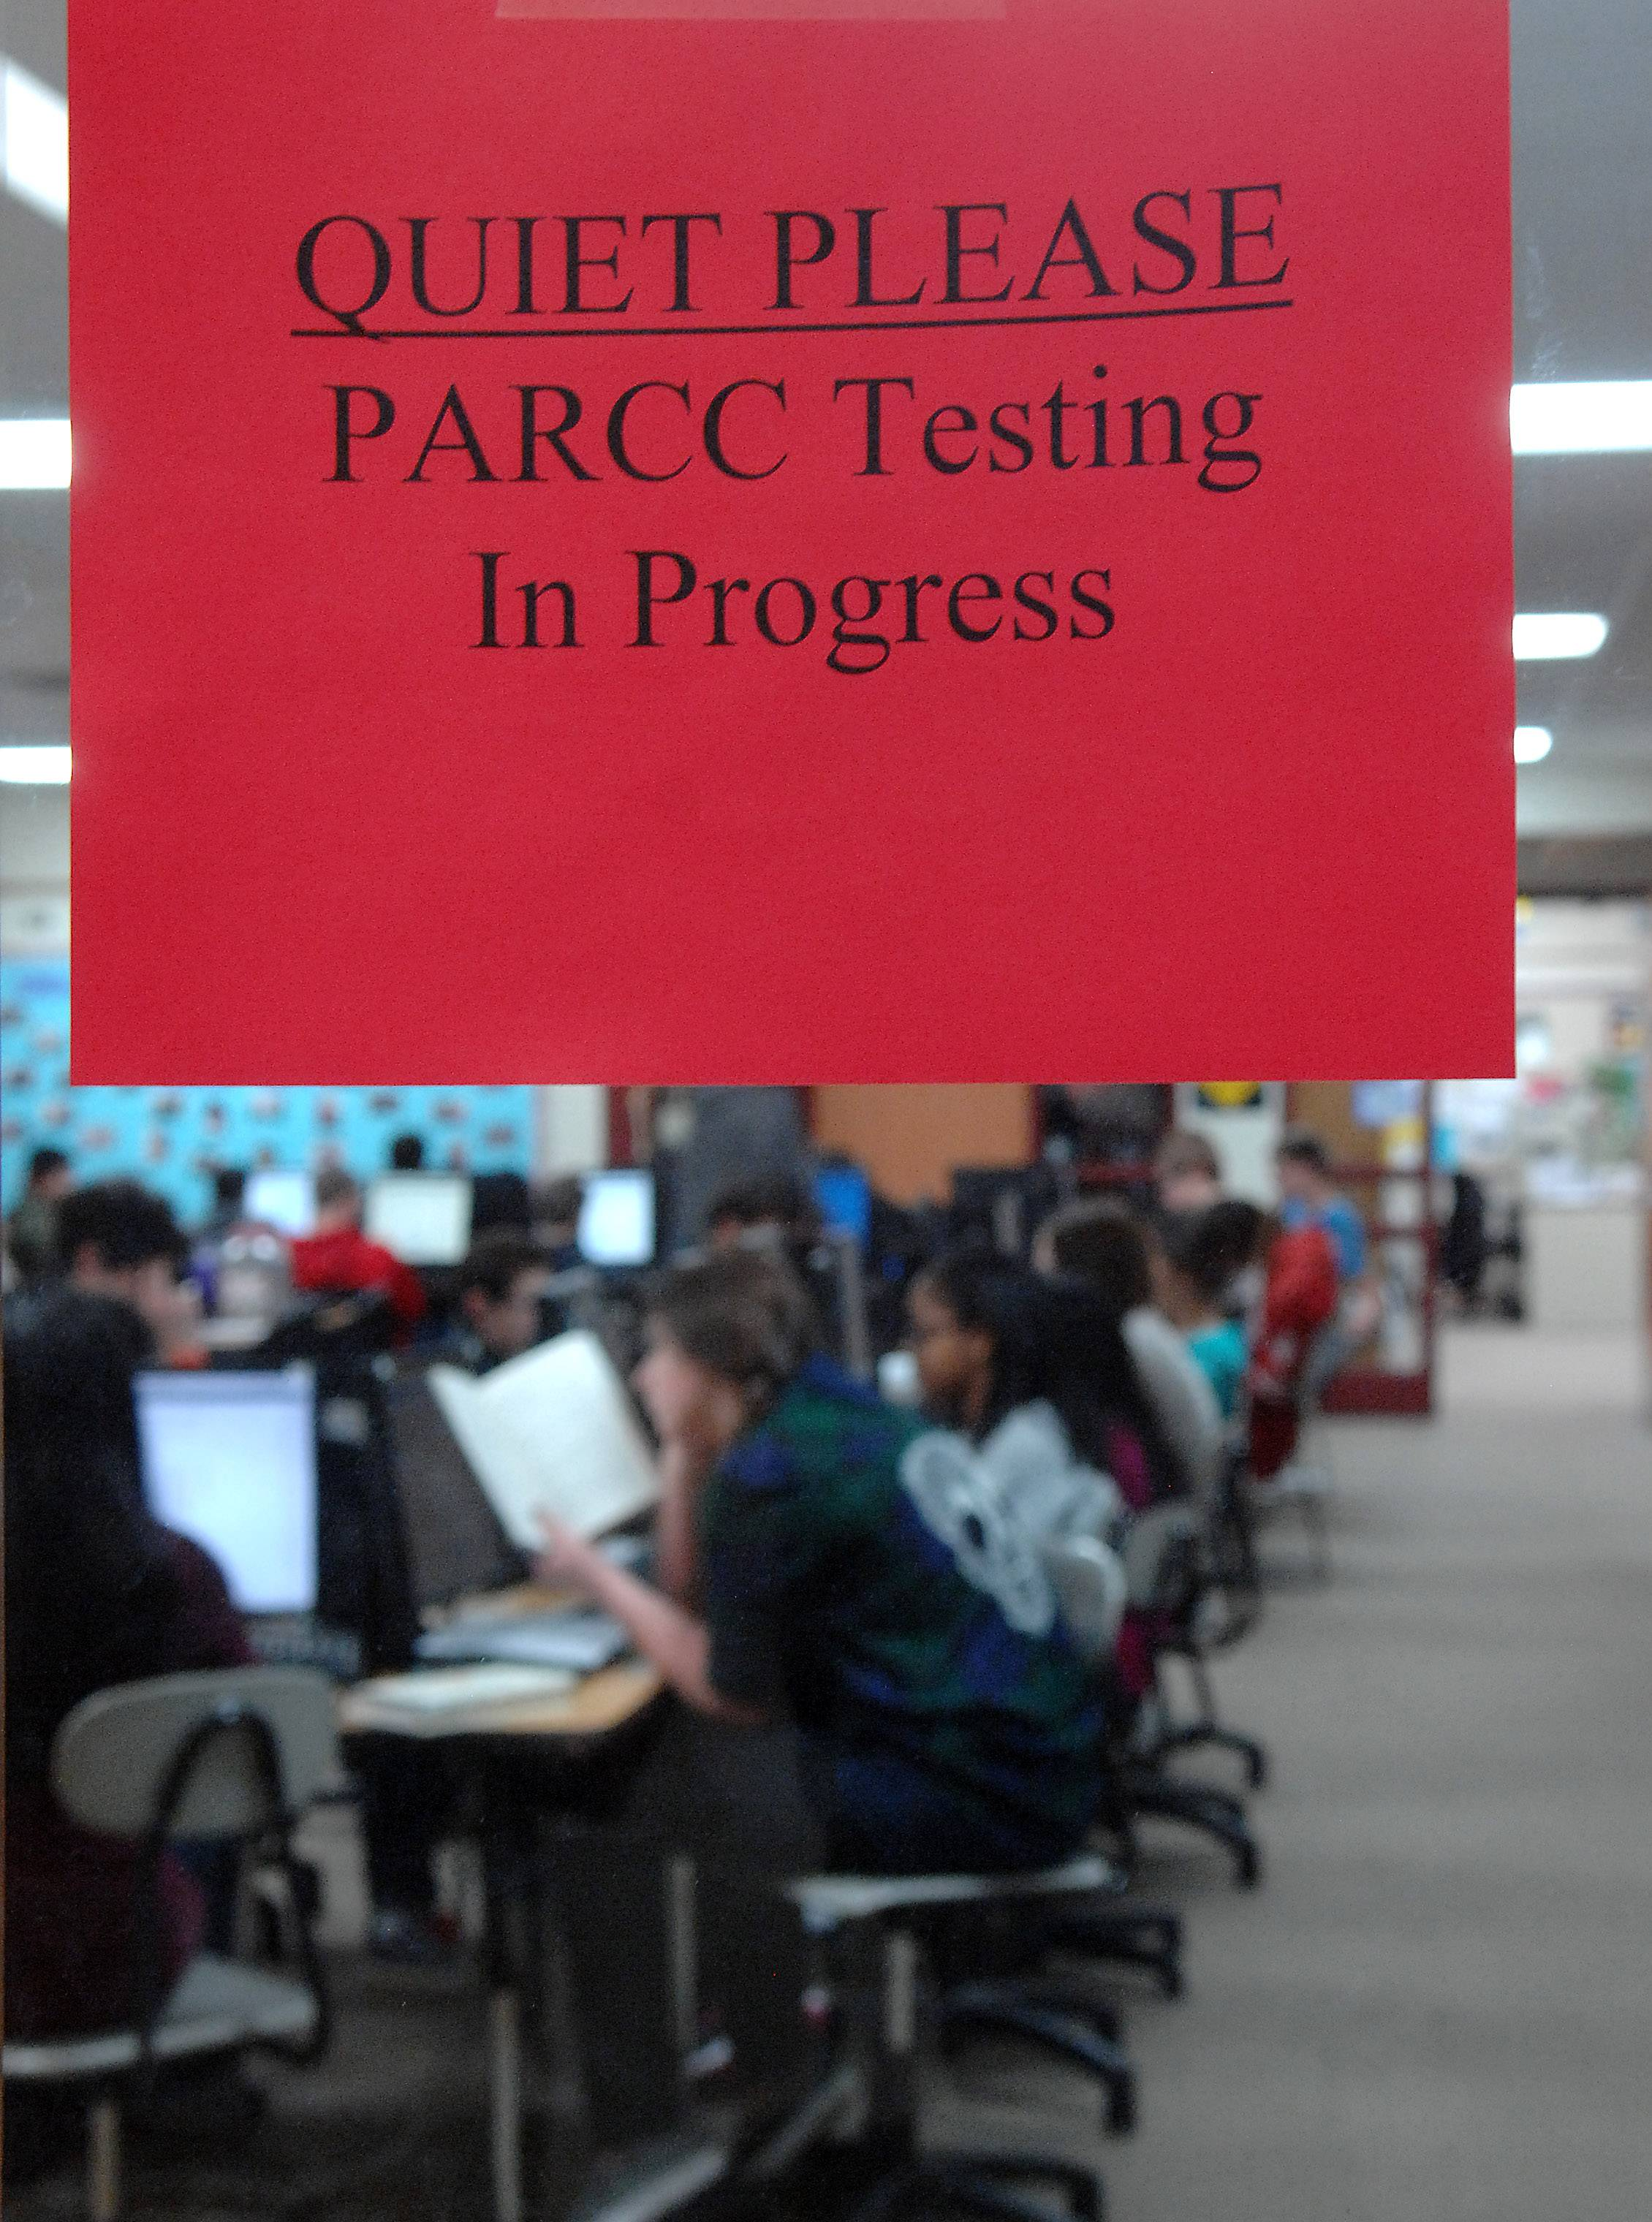 St. Charles schools tallying cost of new PARCC testing